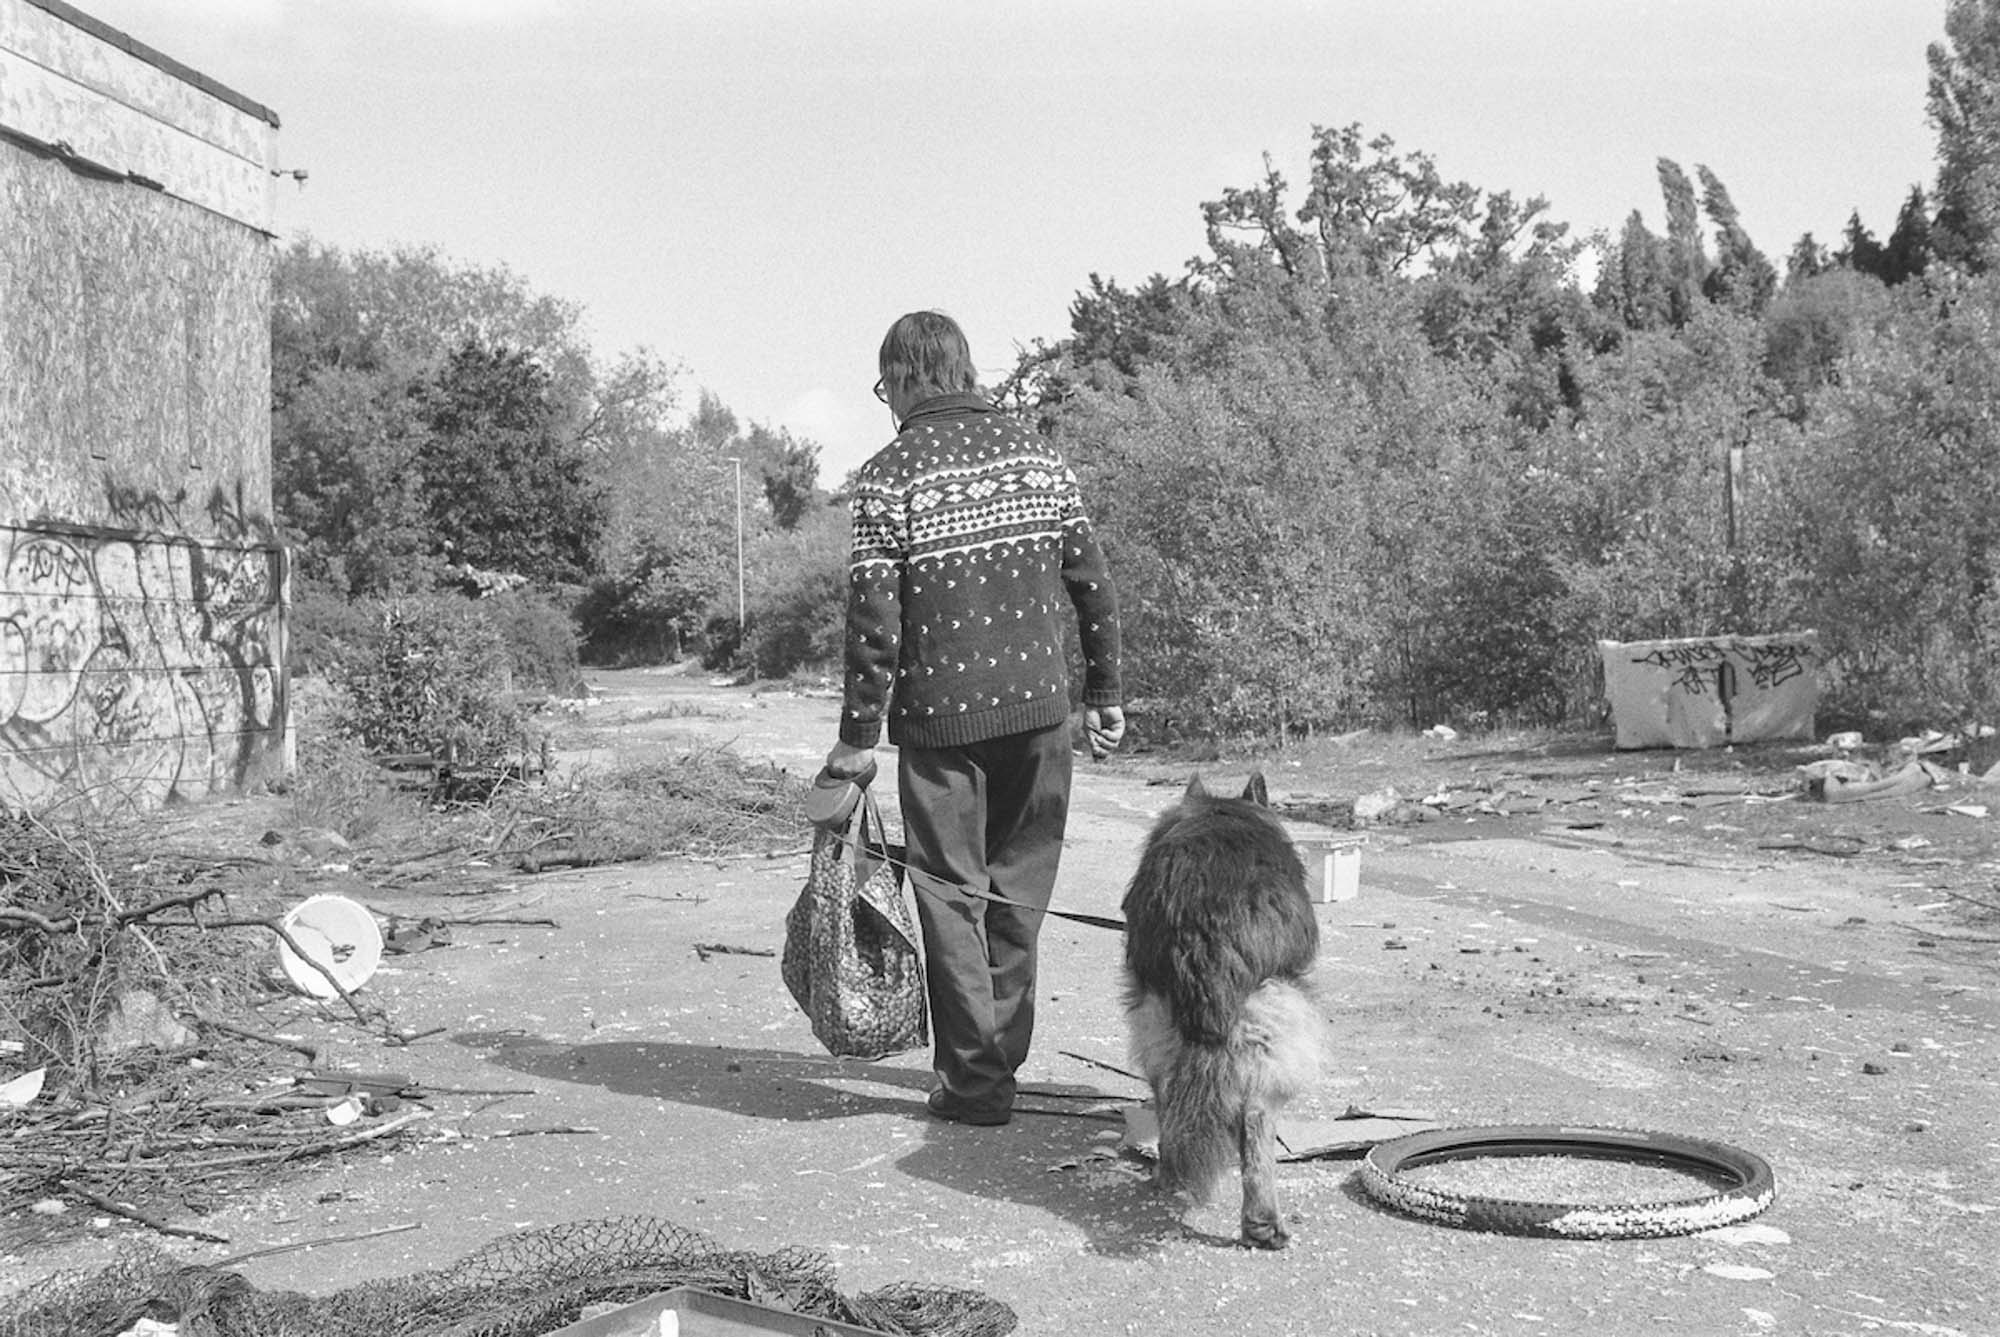 A visitor searches for valuable scrap while walking his dog. May 2017, ILFORD FP4 PLUS